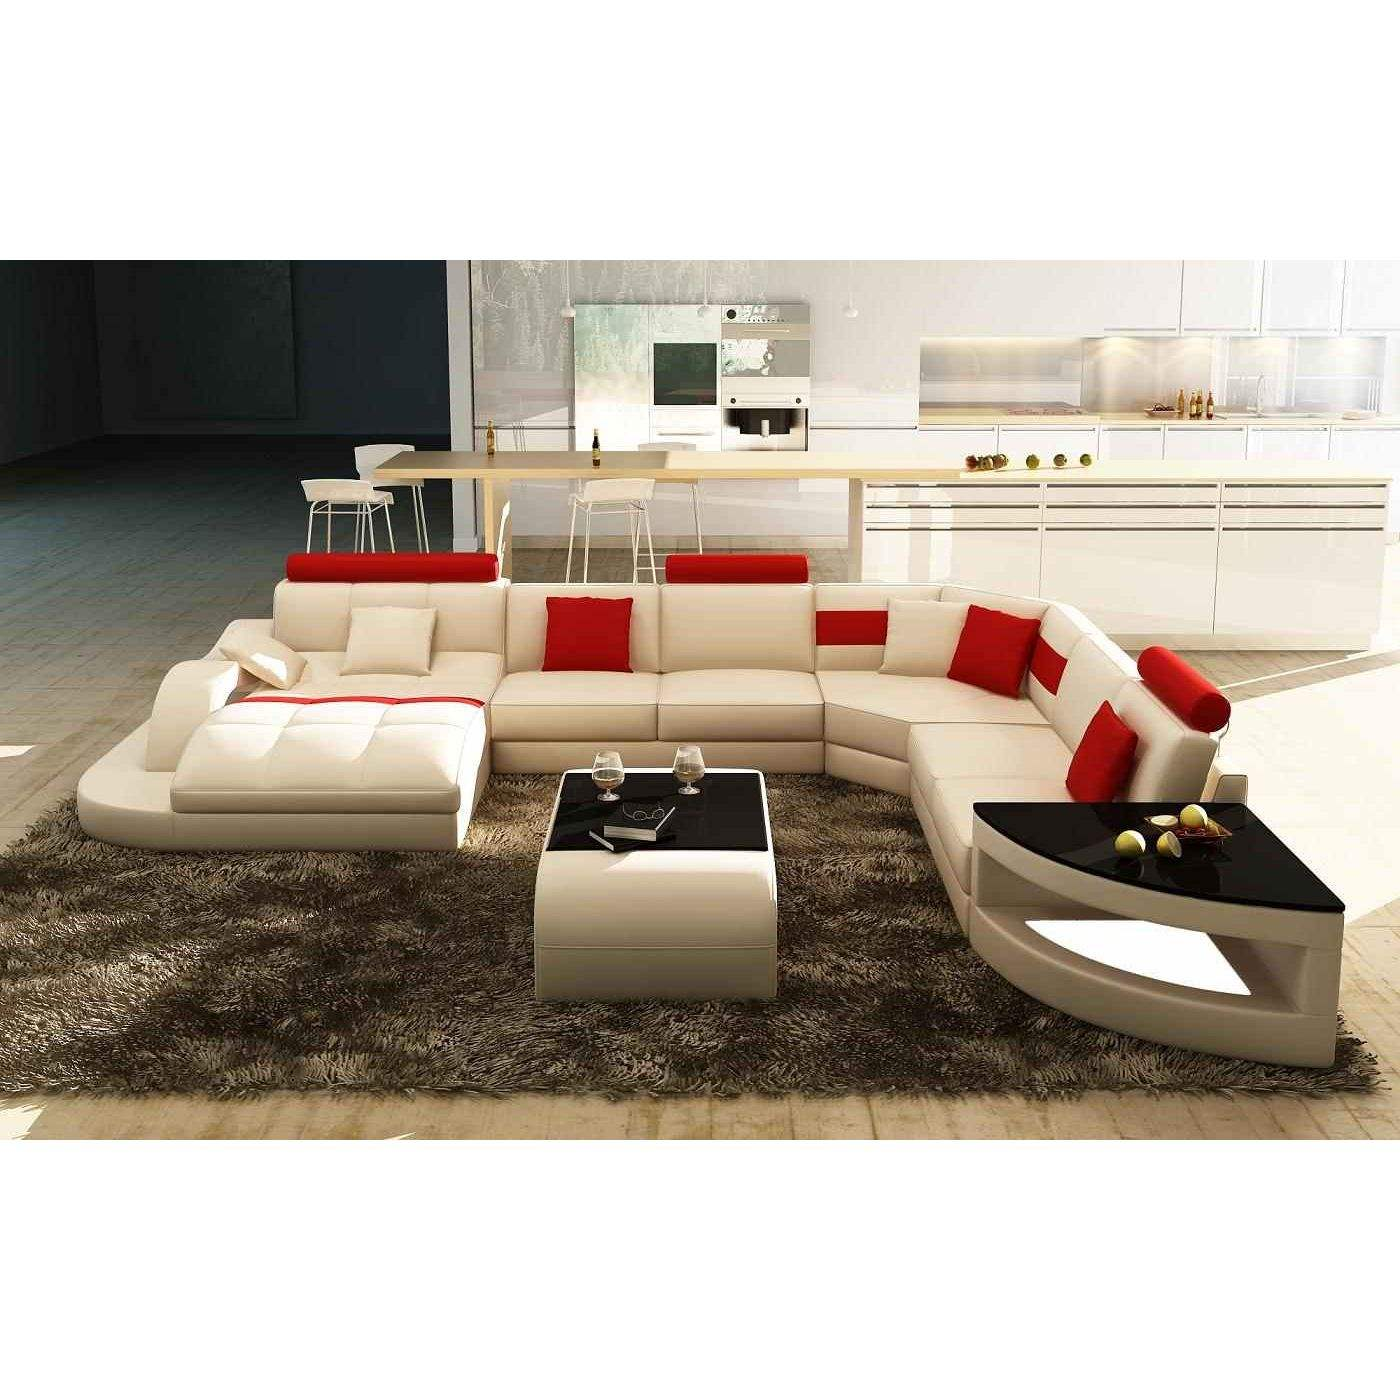 deco in paris canape d angle design panoramique blanc et. Black Bedroom Furniture Sets. Home Design Ideas